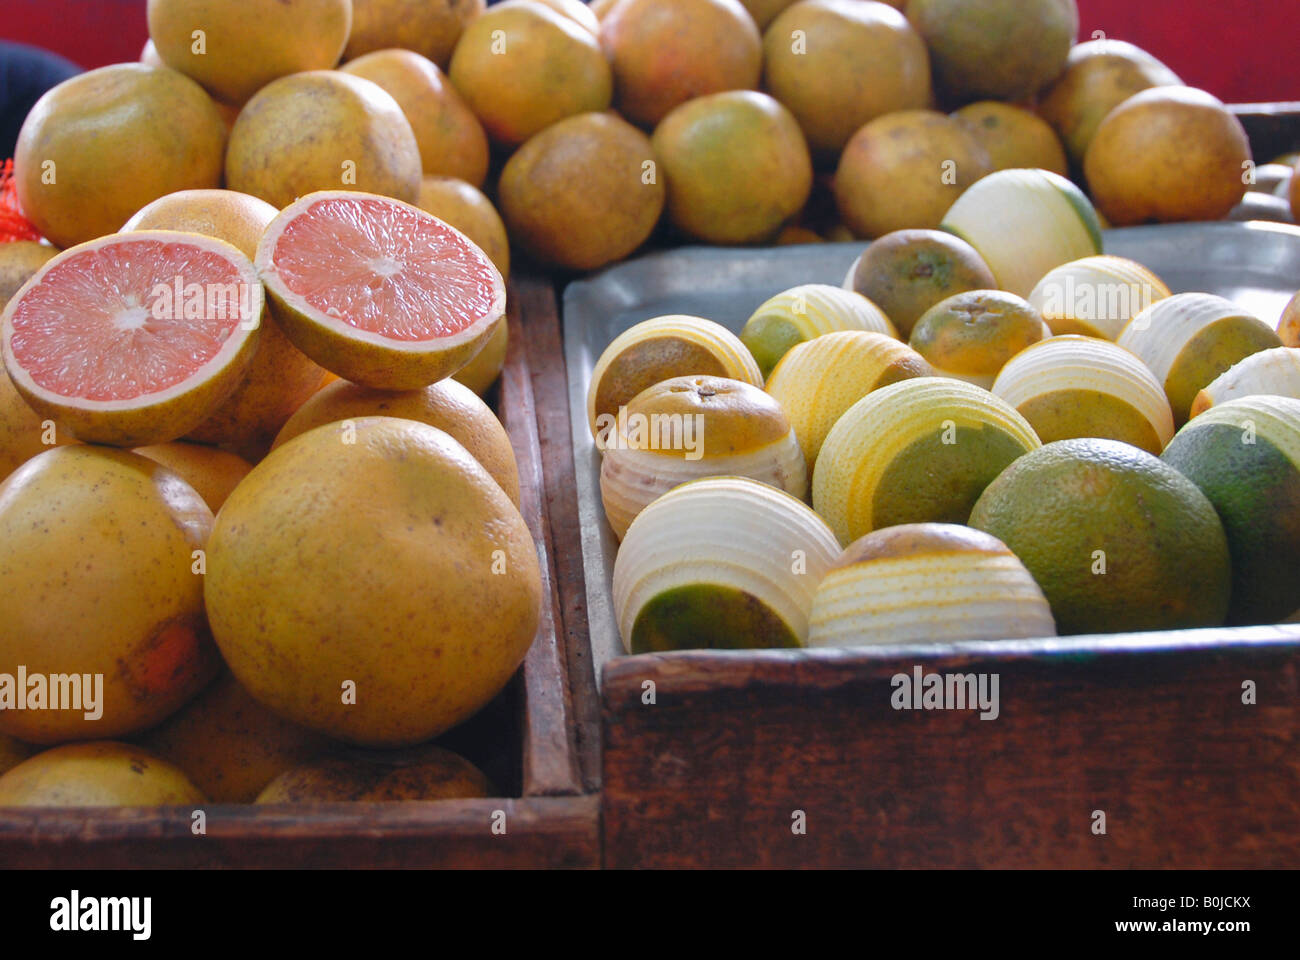 Fresh grapefruits and lemons on sale at an indoor marketplace - Stock Image